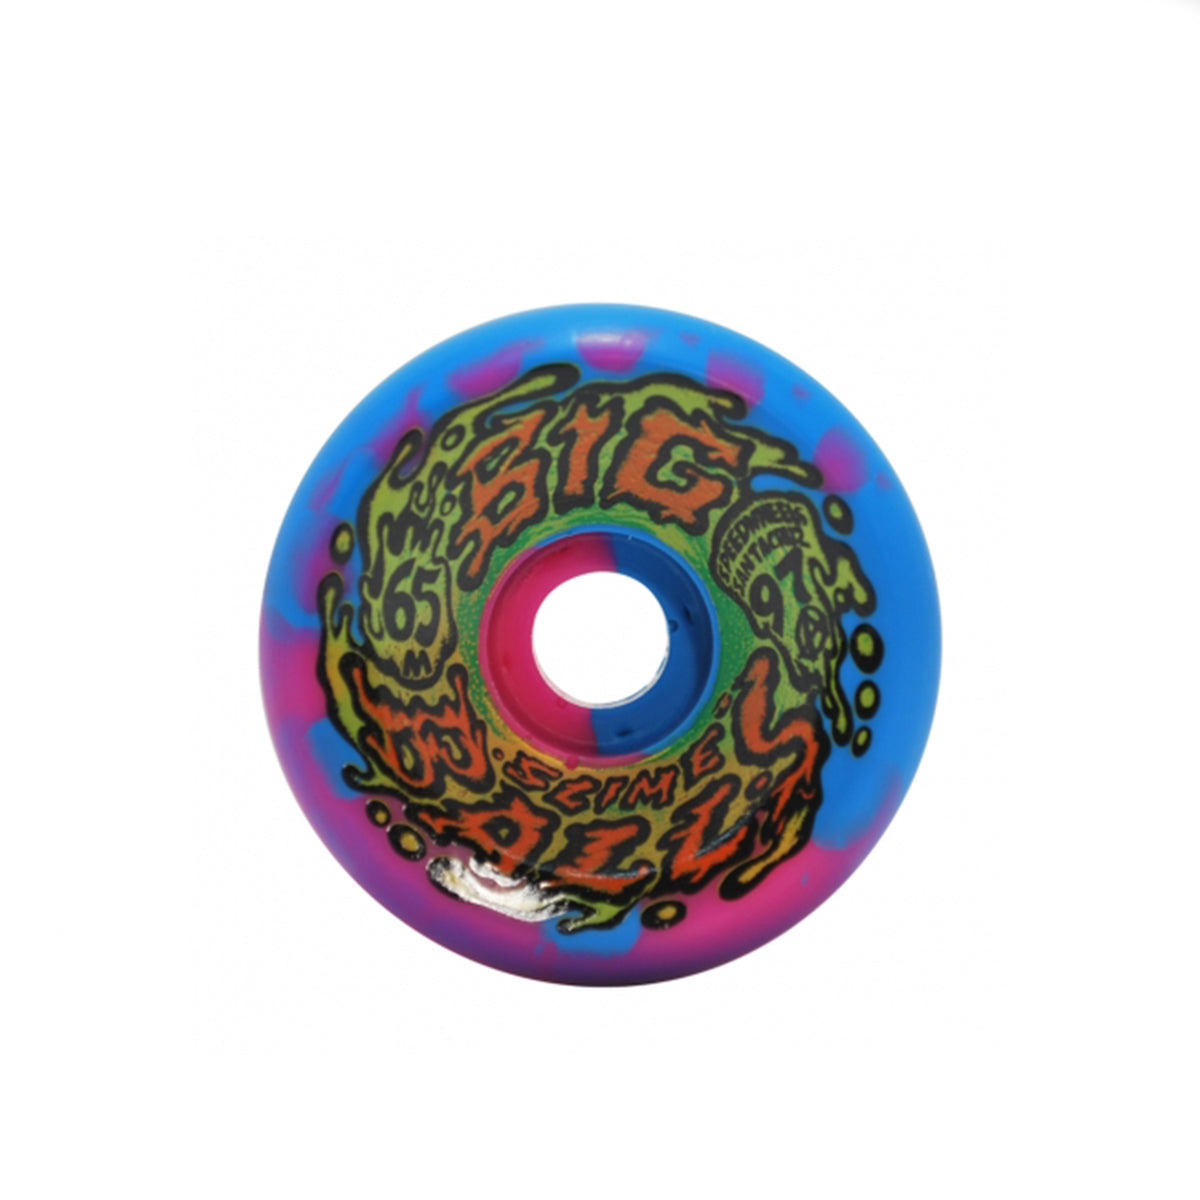 Slime Ball Wheels - Big Balls 97a, Underground Skate Shop